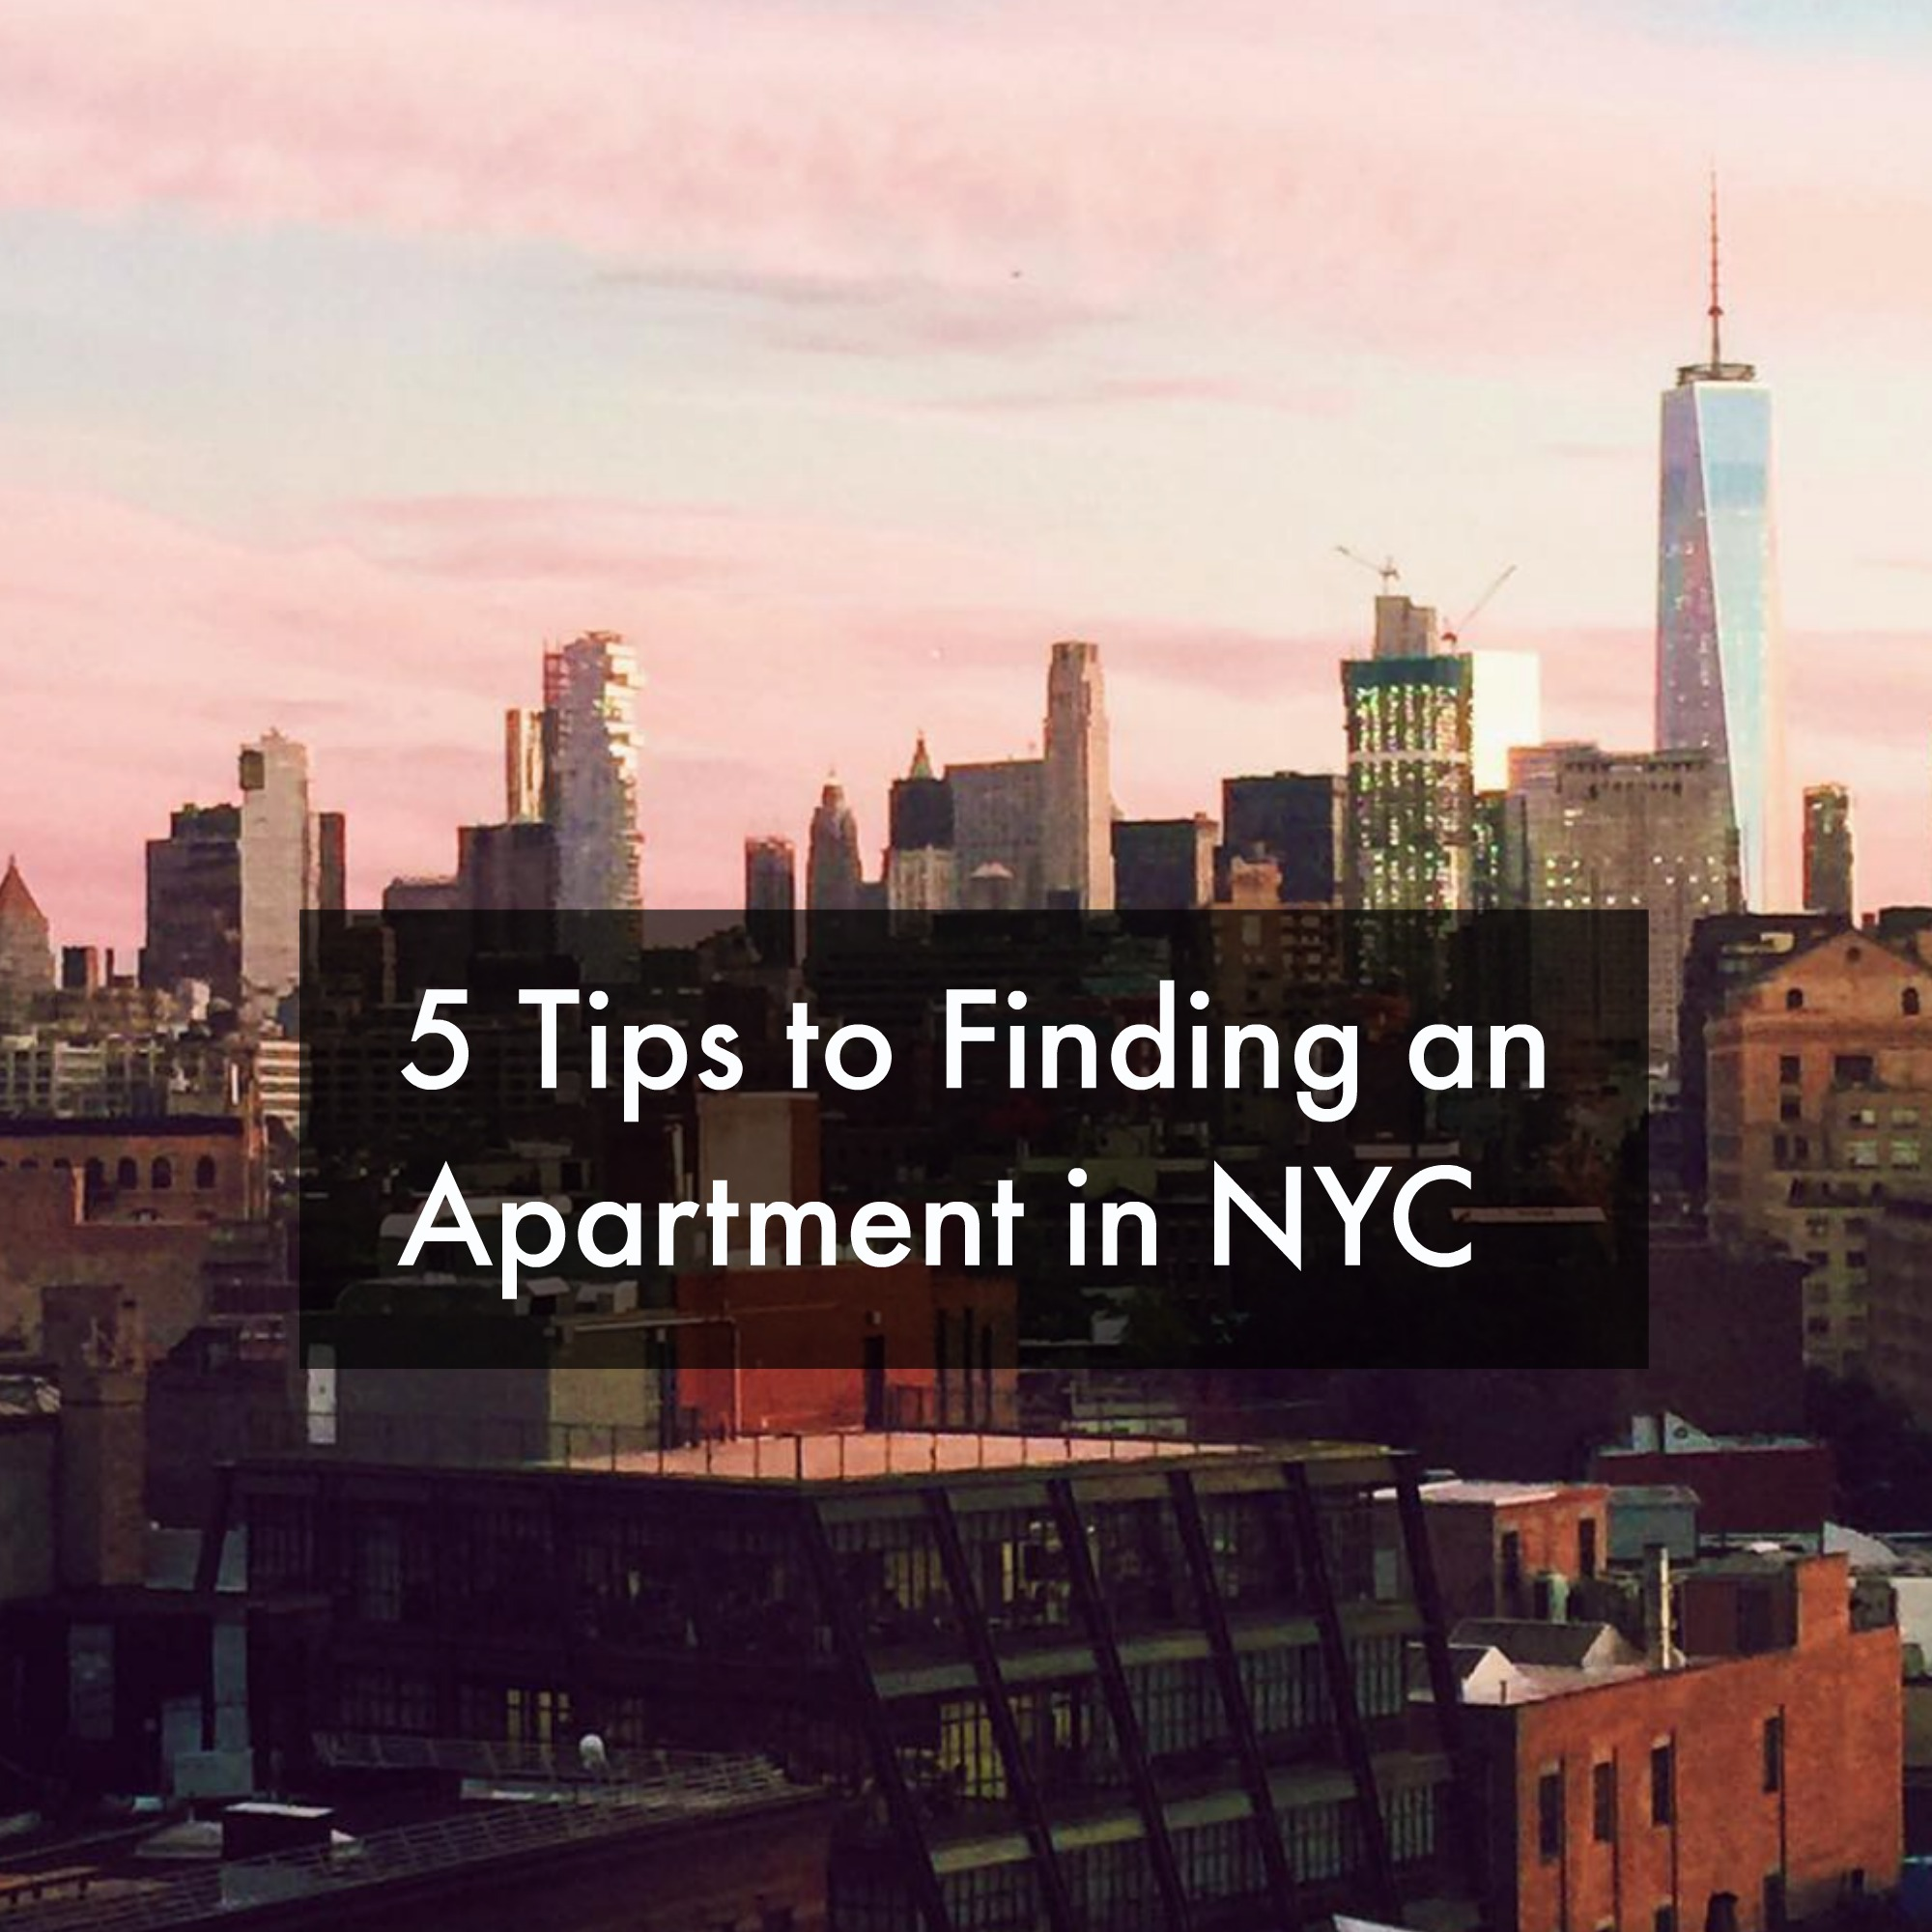 Find An Appartment: Top 5: Tips To Finding An Apartment In NYC